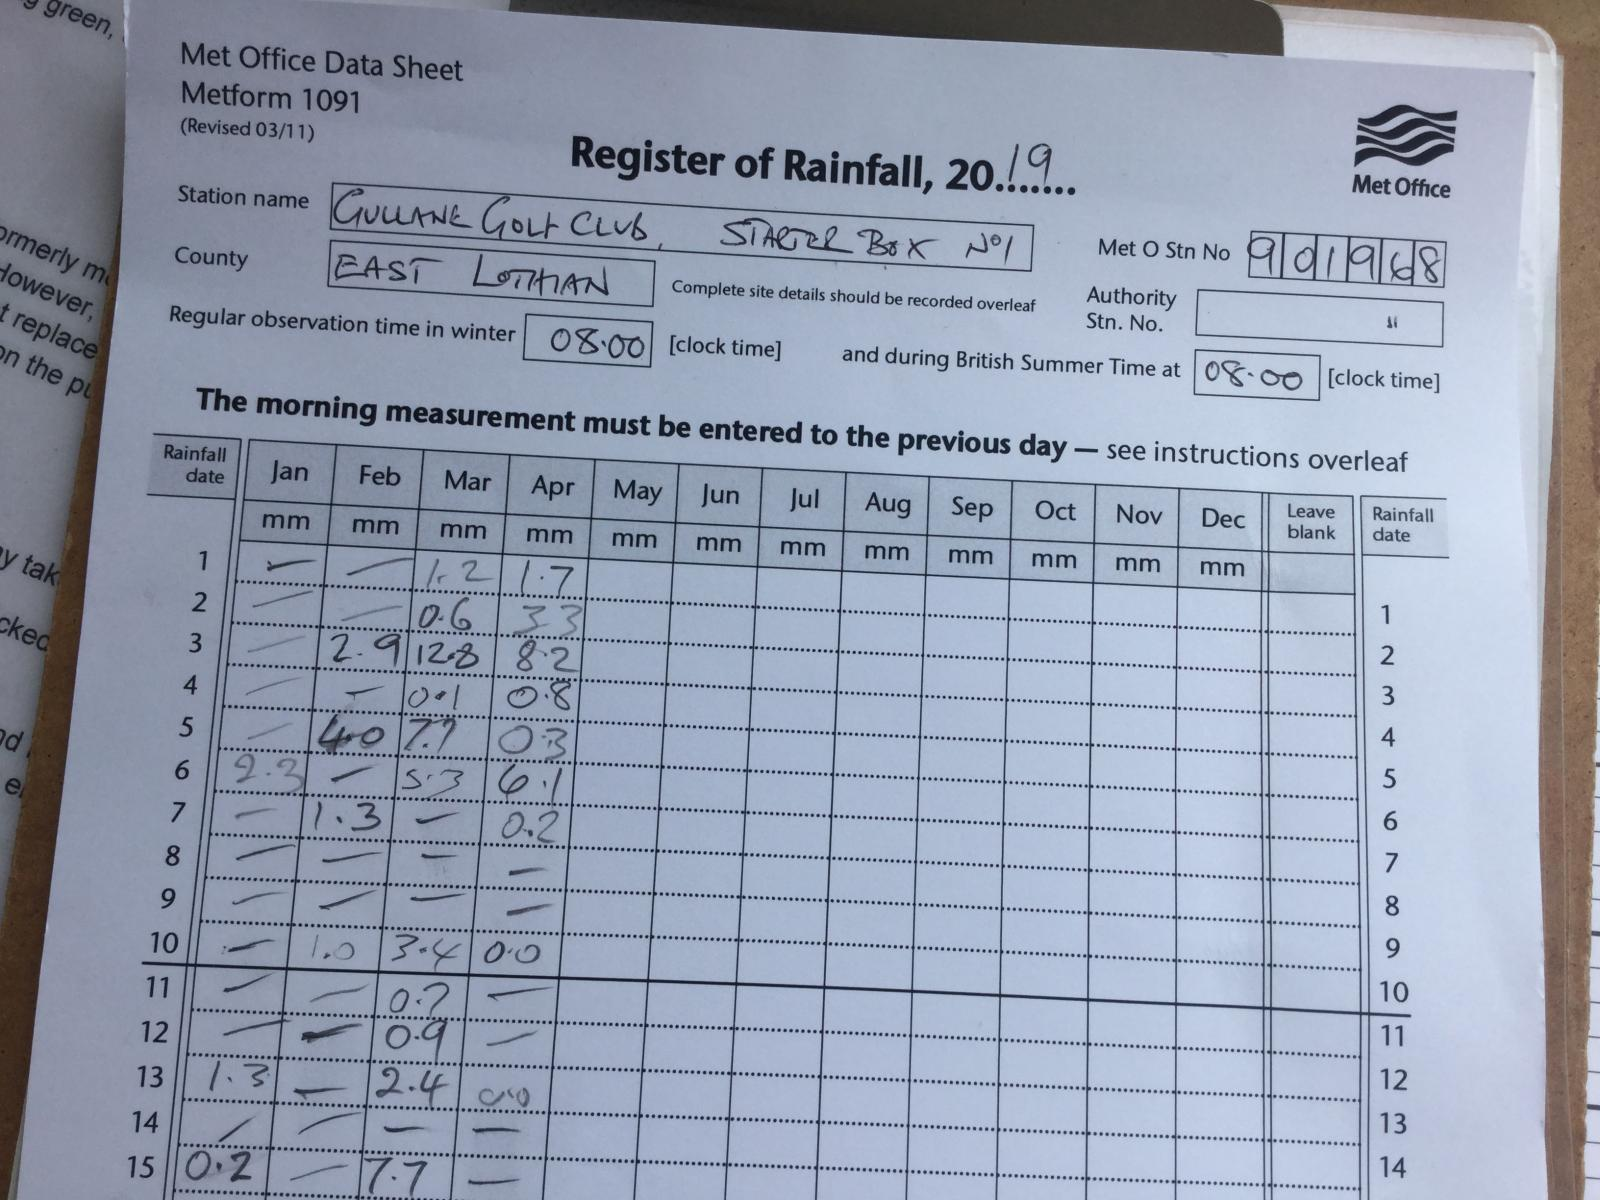 Rainfall records for course